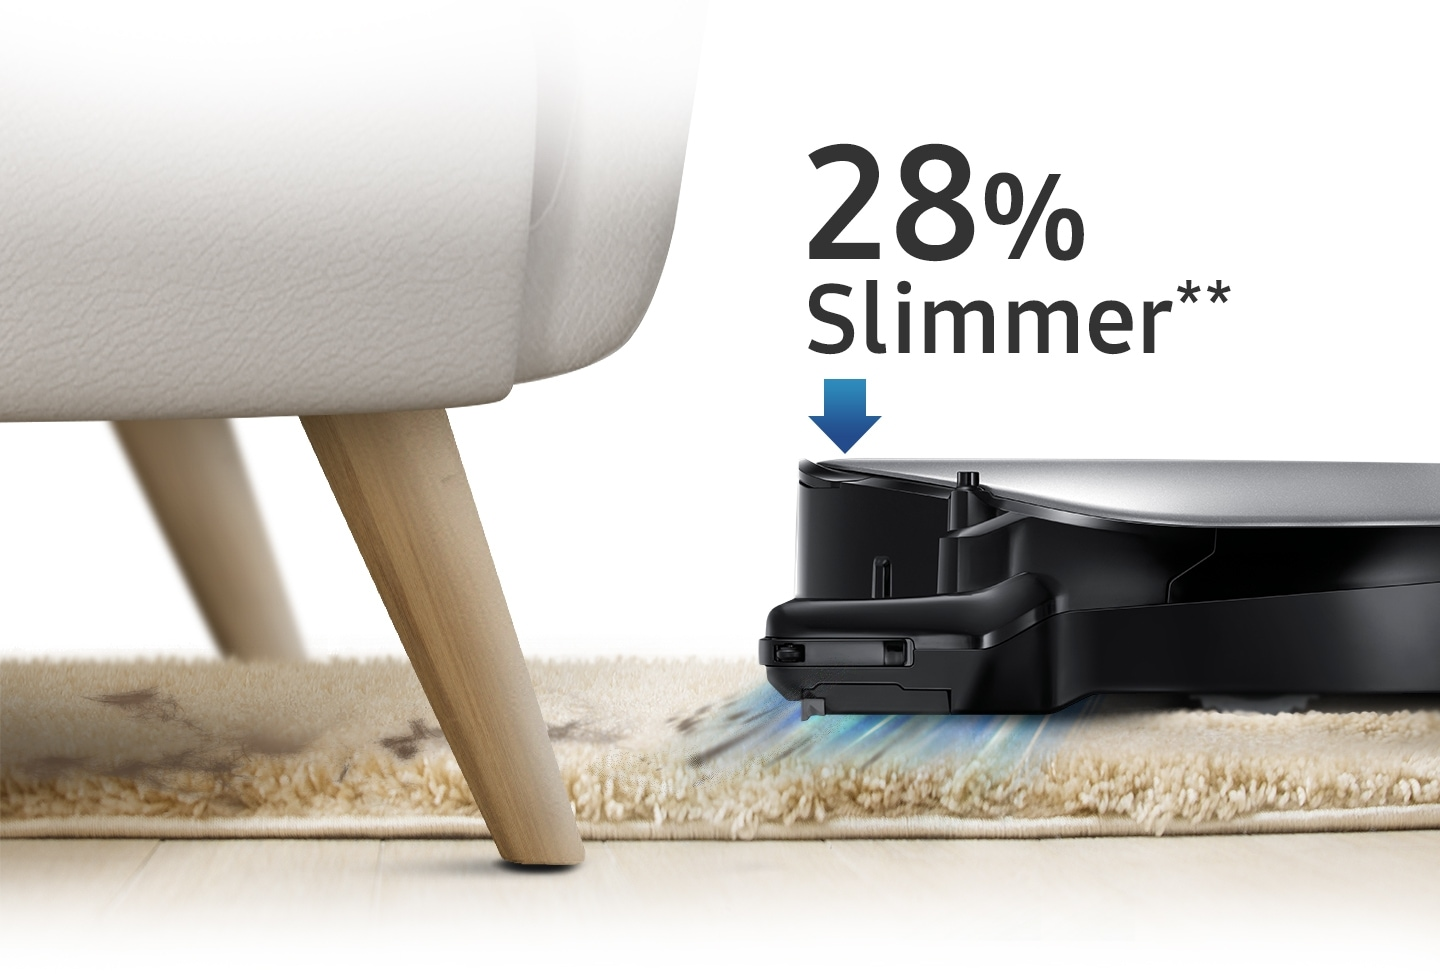 An image showing a POWERbot VR7000 device vacuuming a carpet and cleaning under a sofa, as well as an arrow icon and text that reads '28% slimmer.'